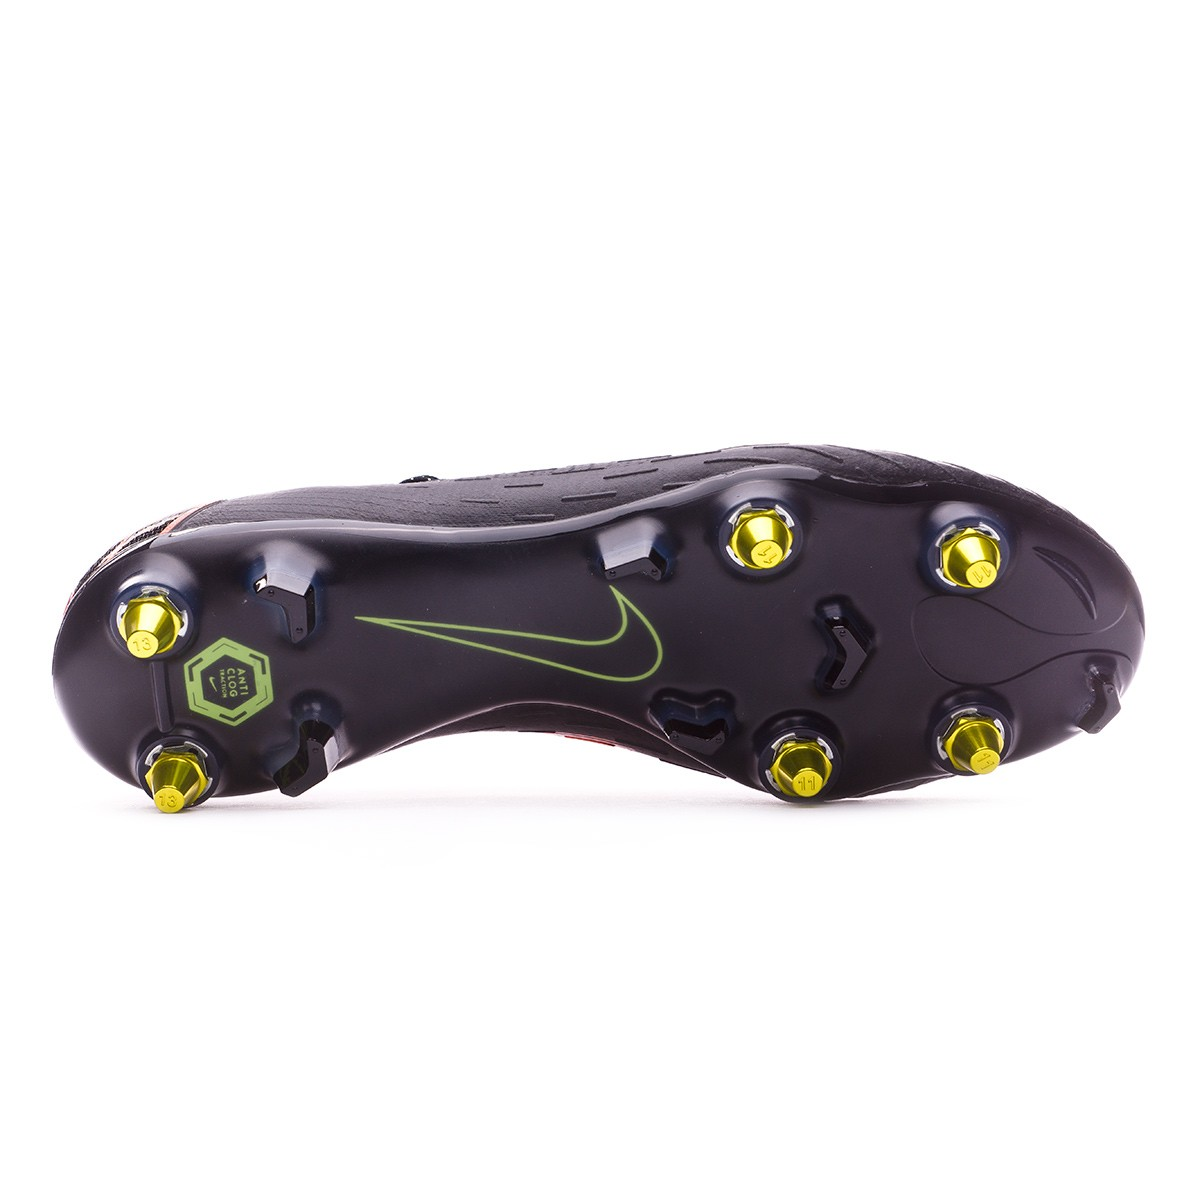 04568e774 Boot Nike Mercurial Vapor XII Elite SG-Pro Anti-Clog Black-Total ...